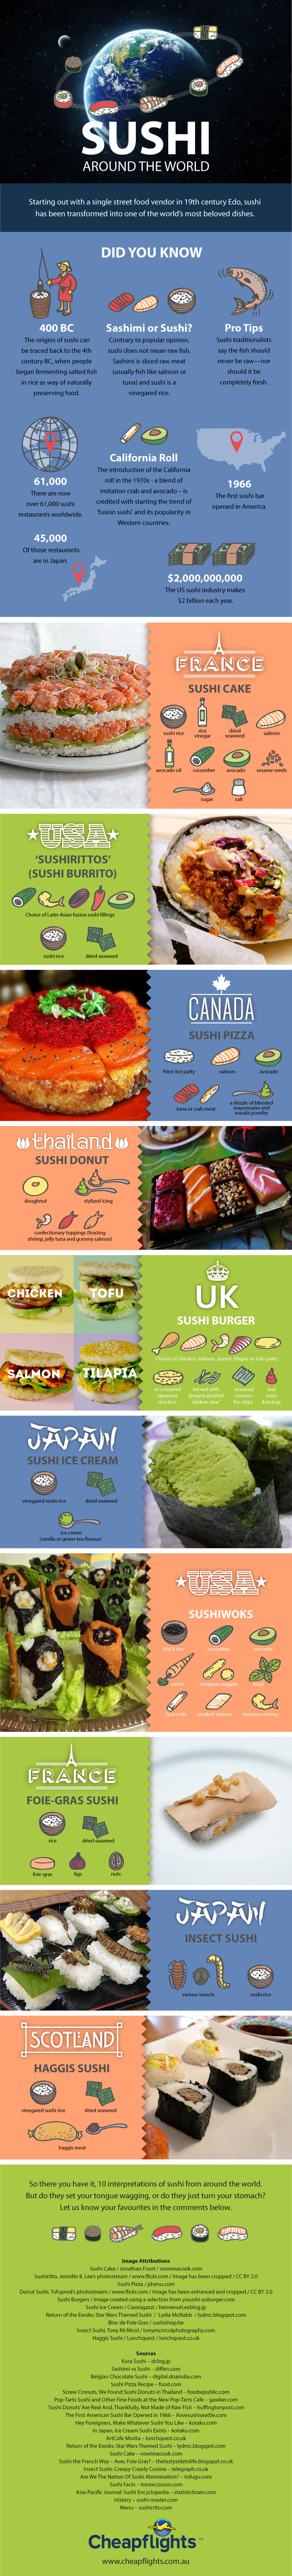 Infographic: Sushi Around the World #infographic